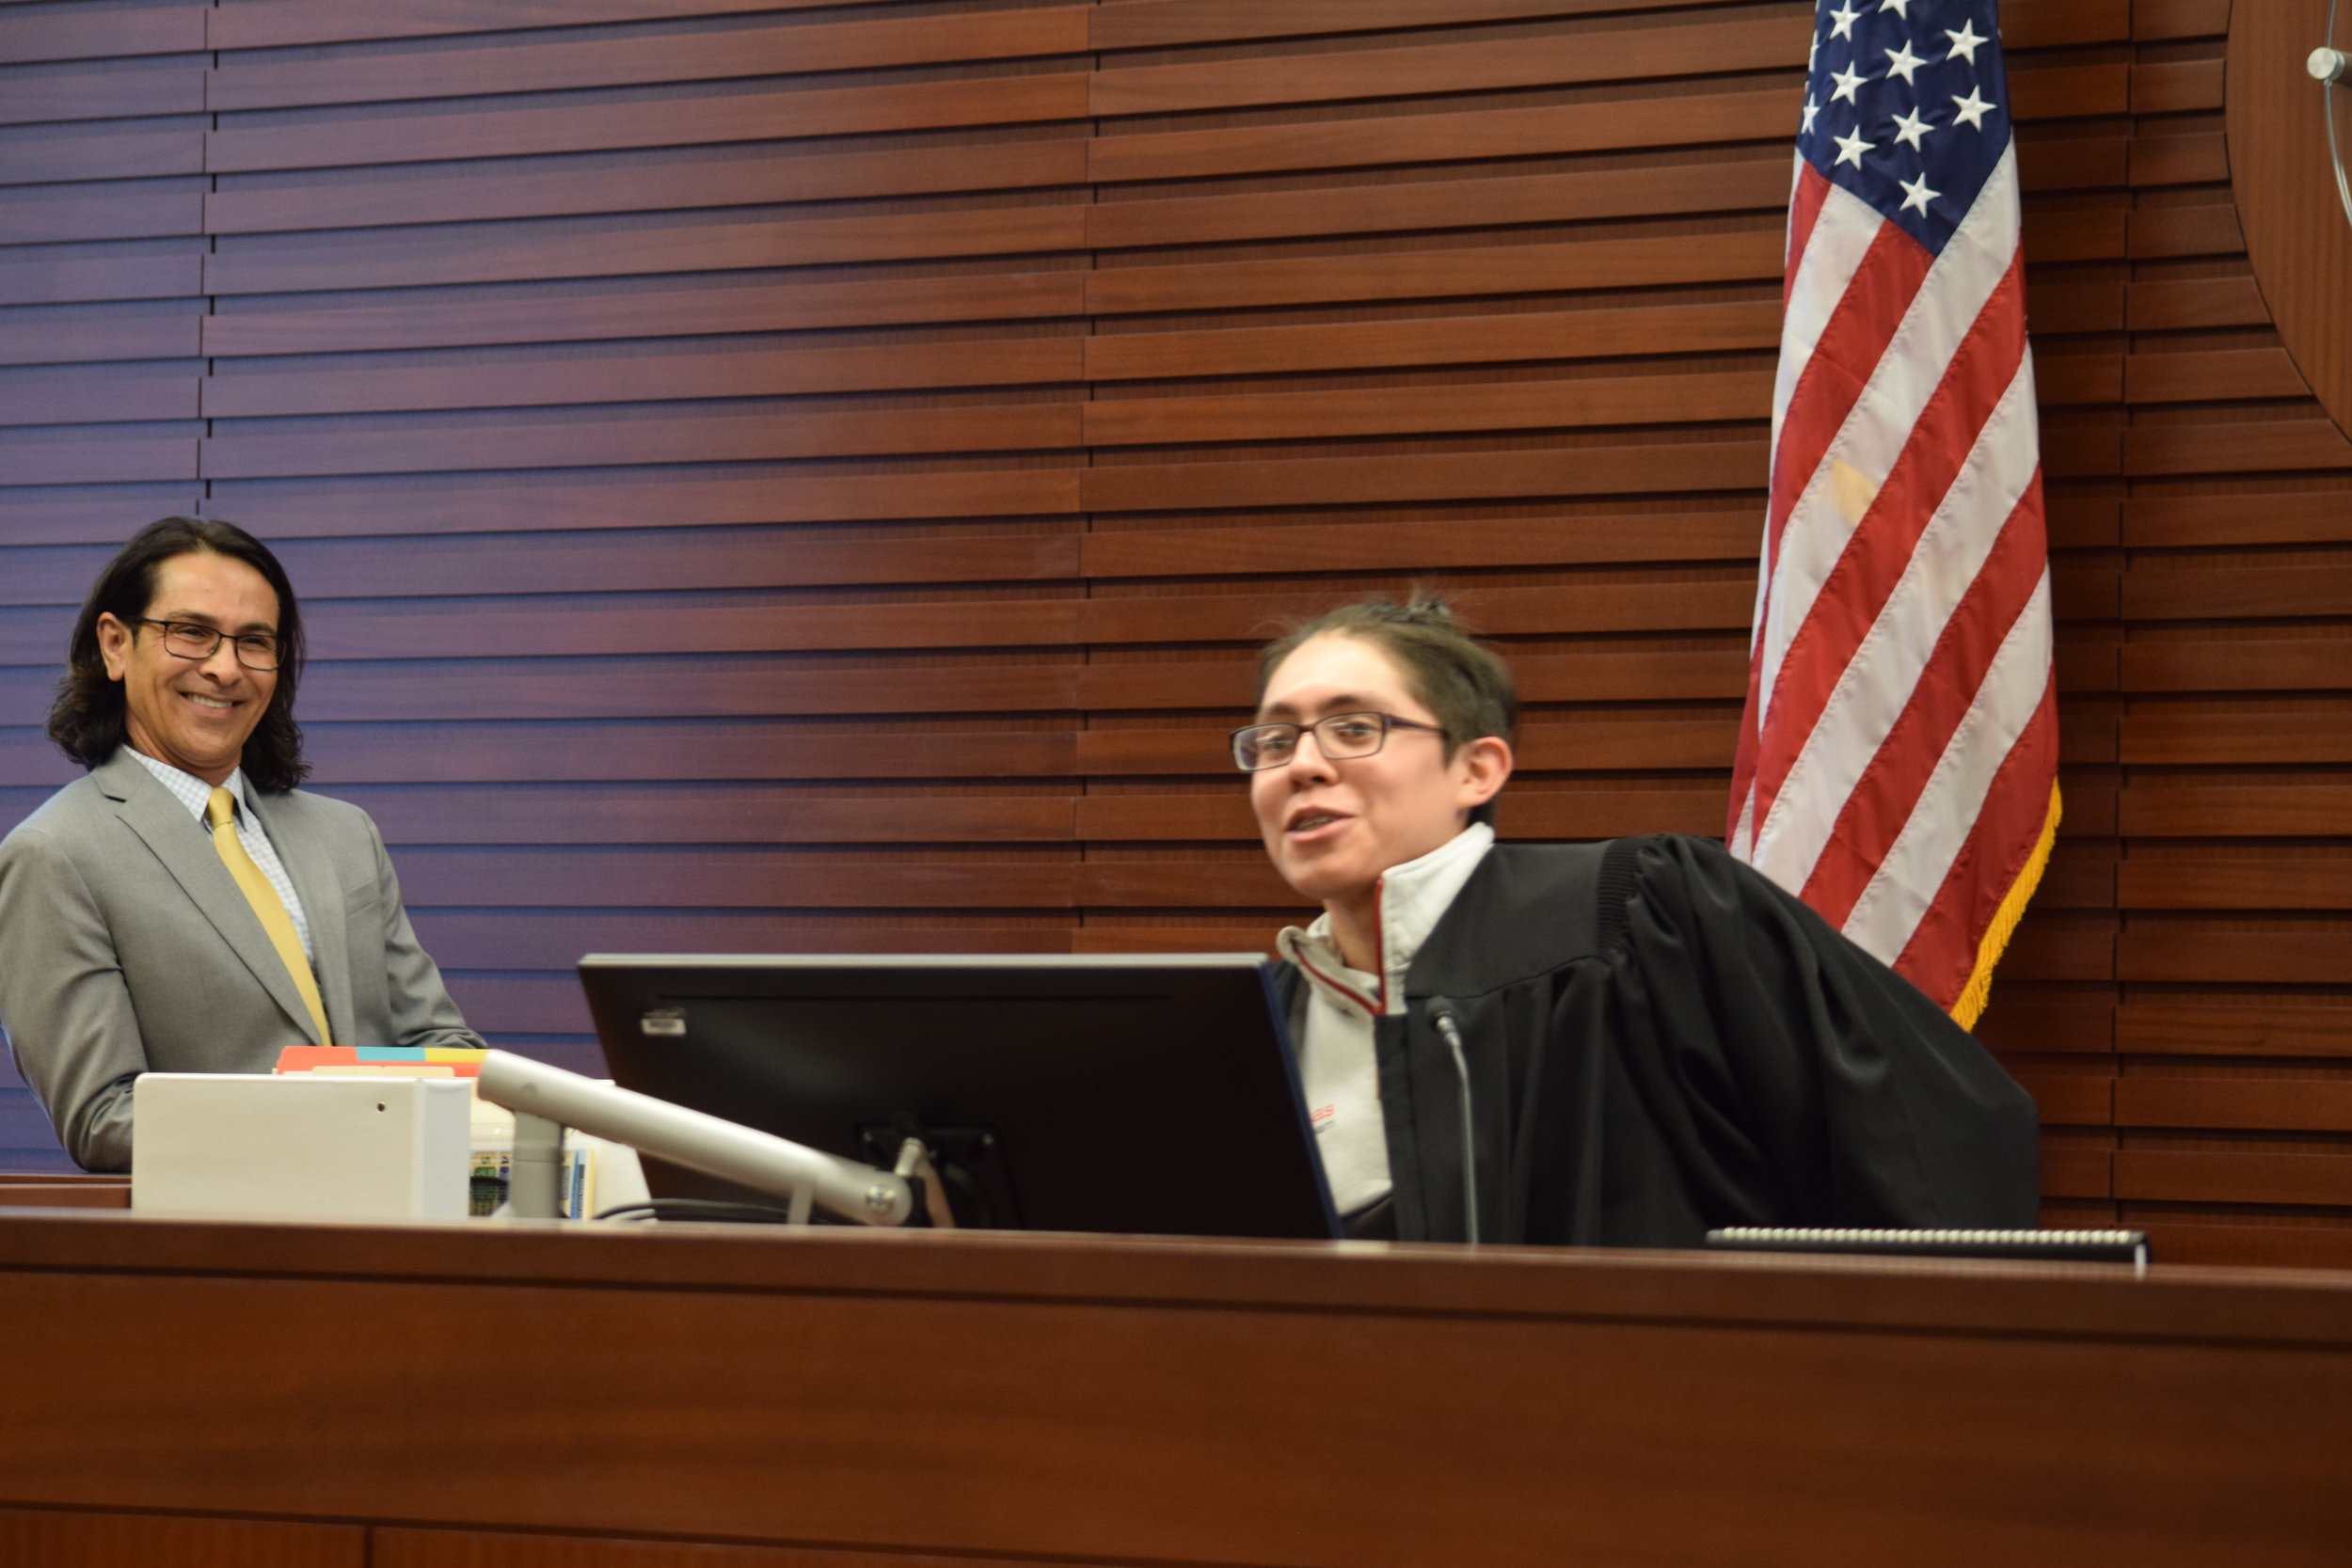 A SVUDL student dresses in Judge Francos' black robes and sits from his bench. During the visit to the courthouse, SVUDL members were able to learn more about the inner workings of a courthouse and the world of judges.